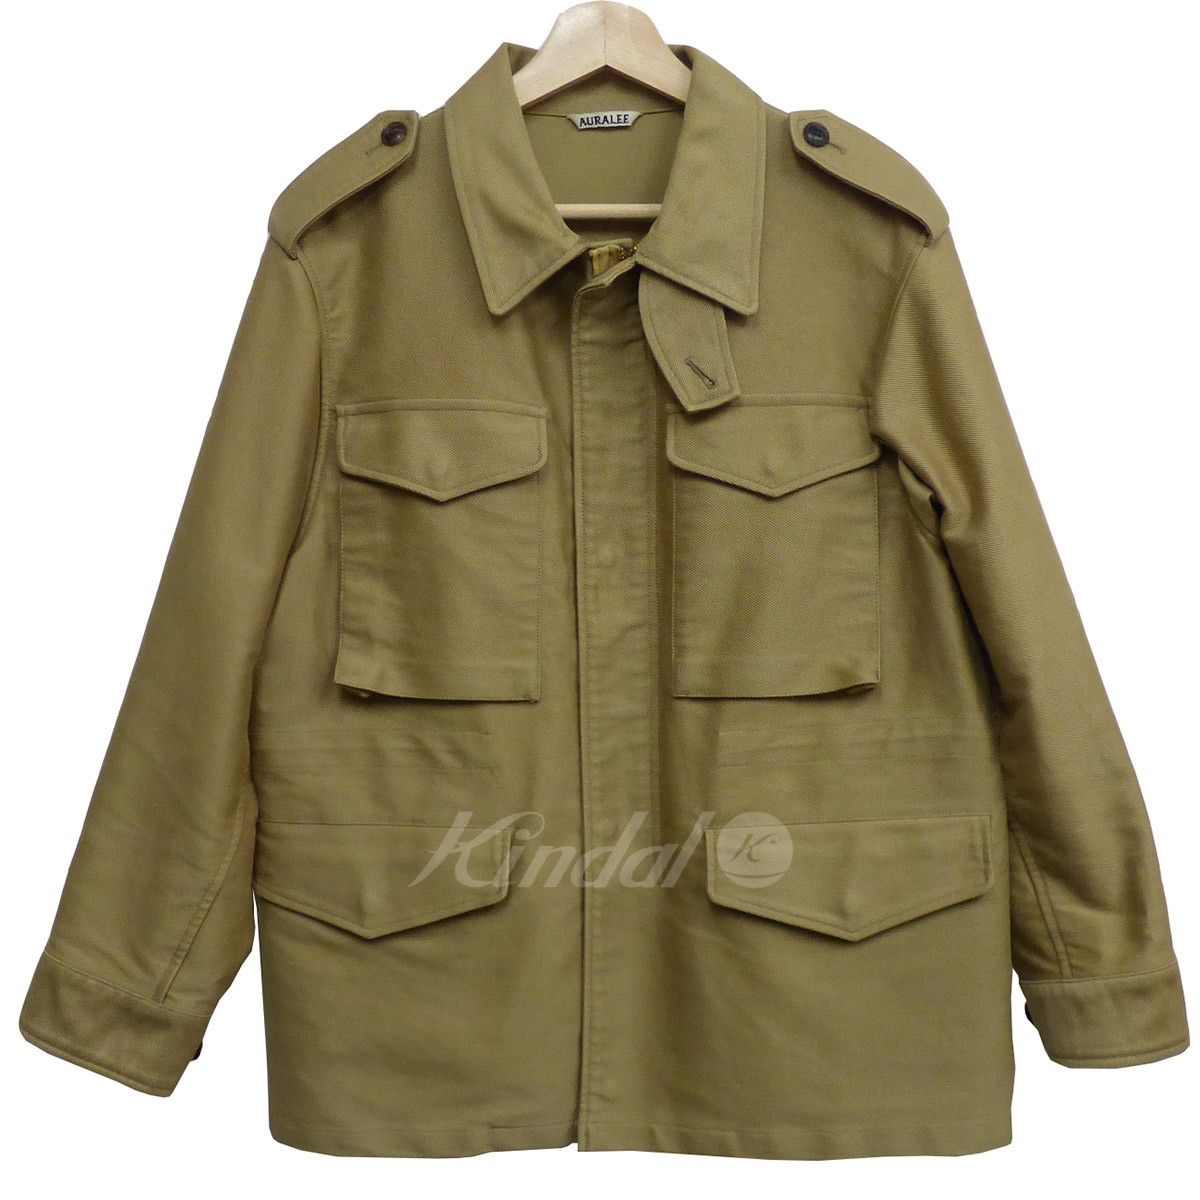 【中古】AURALEE 16AW WASHED DOUBLE CLOTH FIELD JACKETウェッシュドジャケット 【送料無料】 【001415】 【KIND1550】